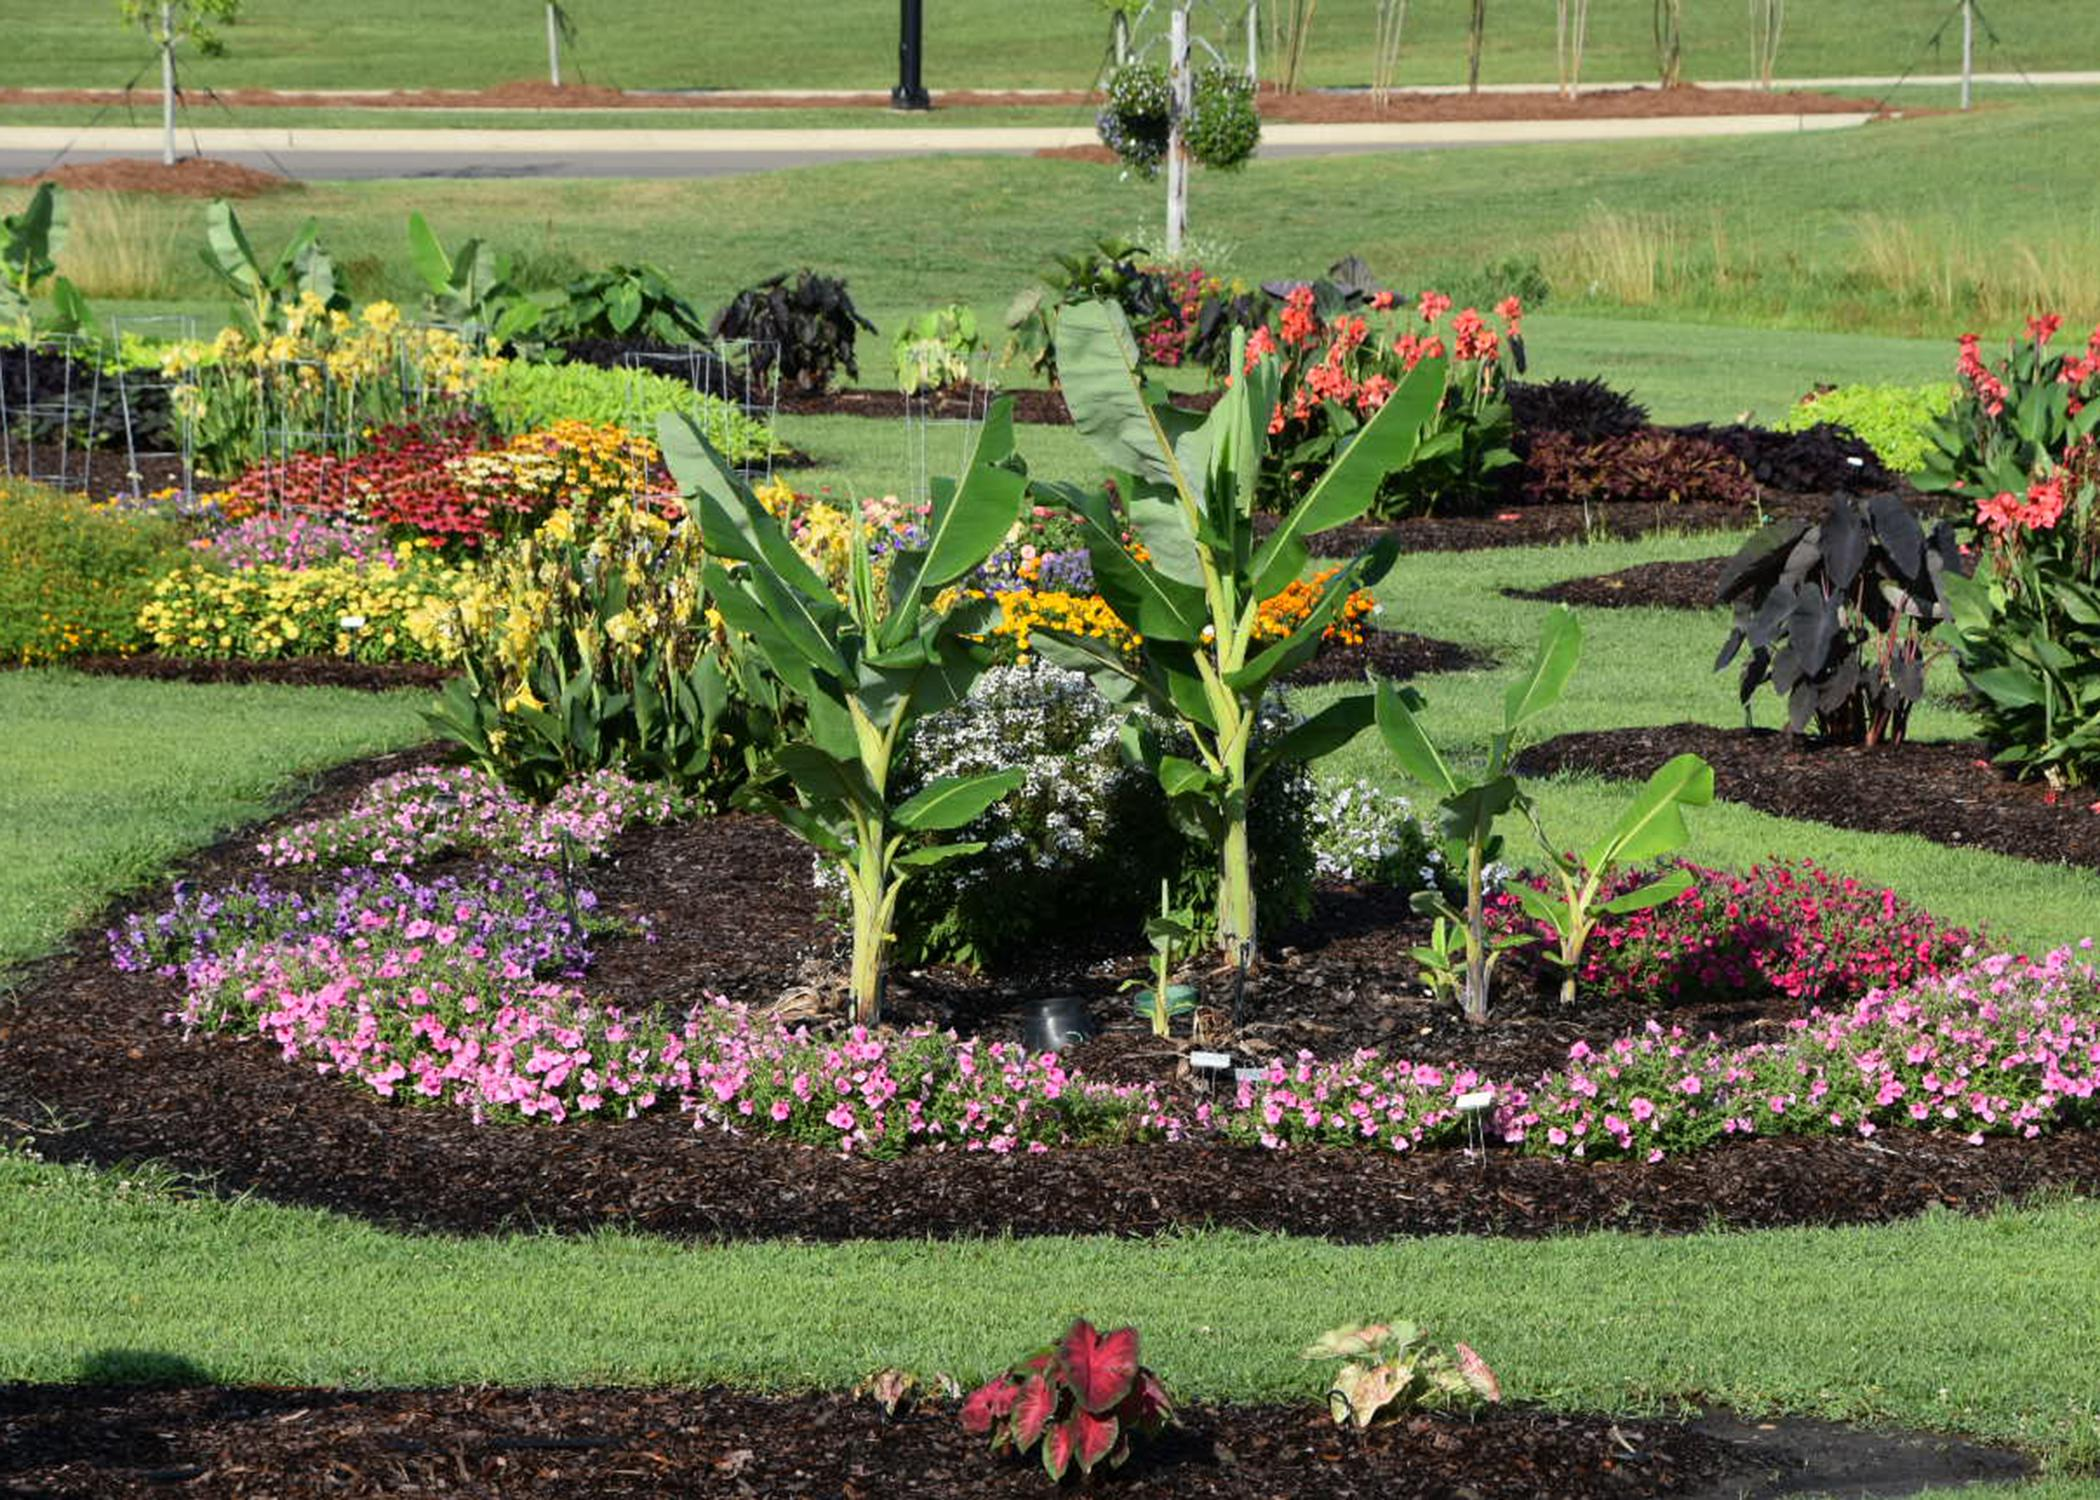 Mississippi State University established trial gardens across the state to generate plant growth and performance data and make fact-based recommendations. The Mississippi State trial gardens in Starkville capture data from one unique set of growing conditions. (Photo by MSU Extension Service/Gary Bachman)